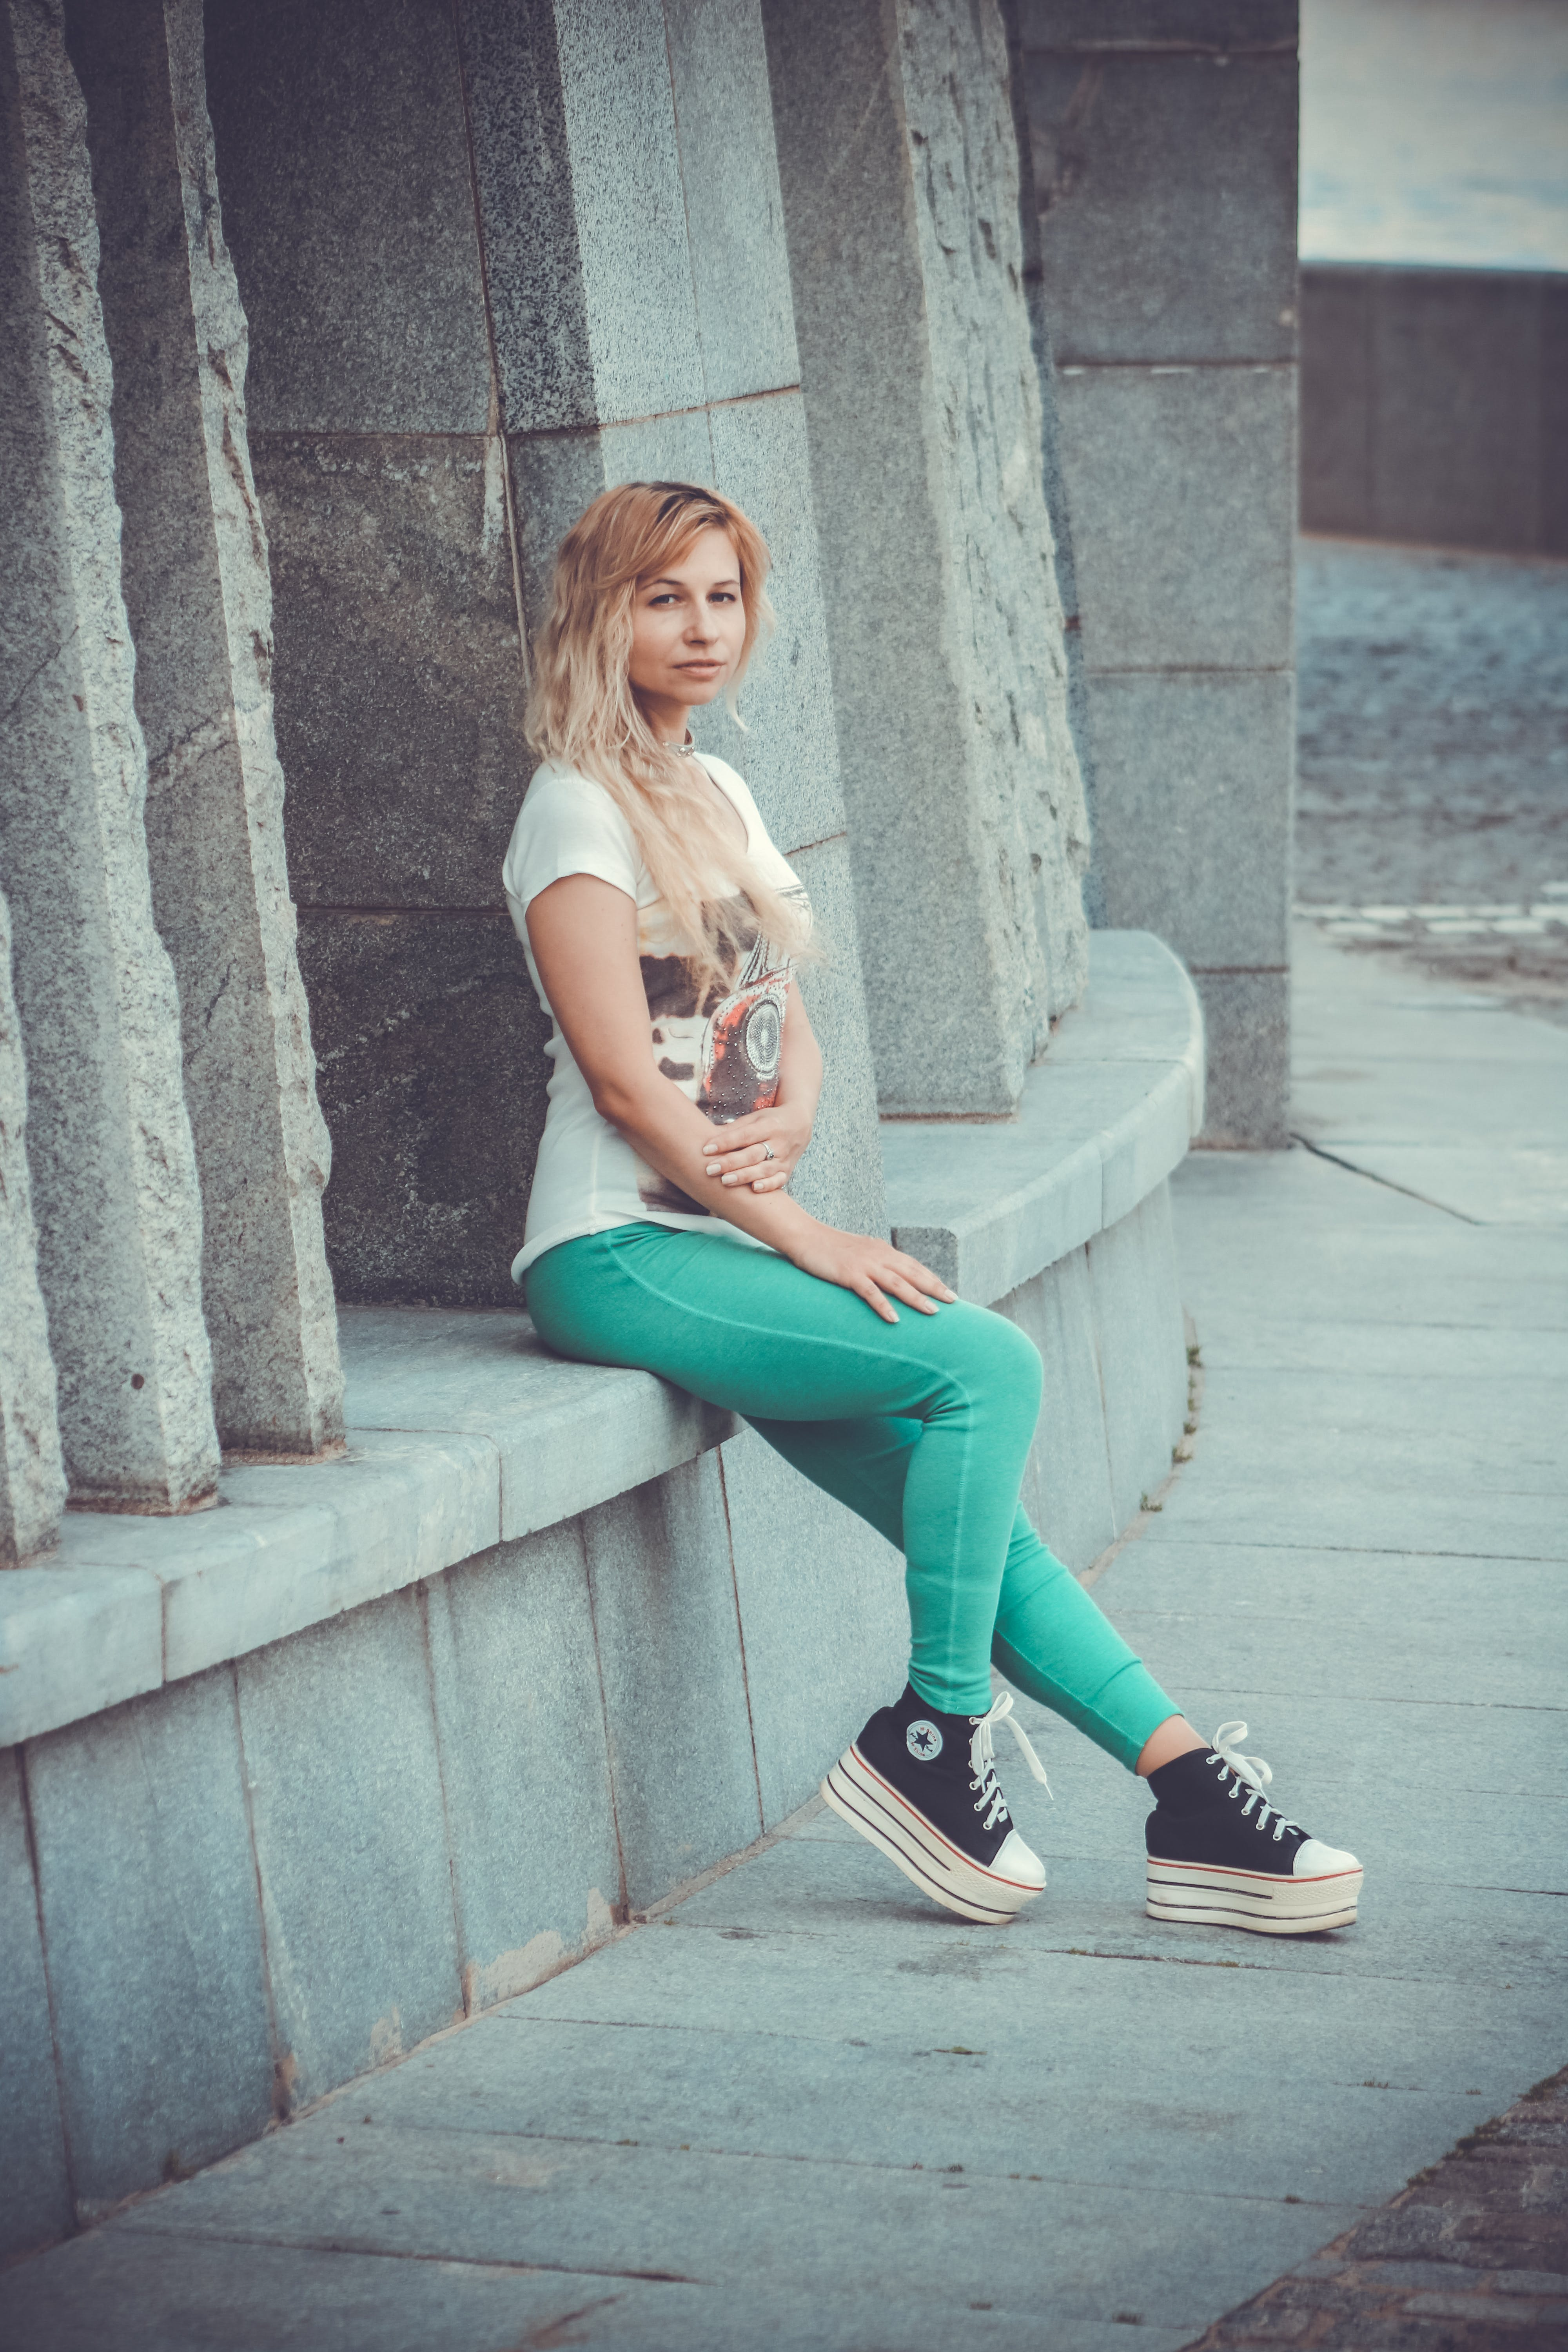 Woman Wearing White T-shirt and Green Pants Sitting on Bench